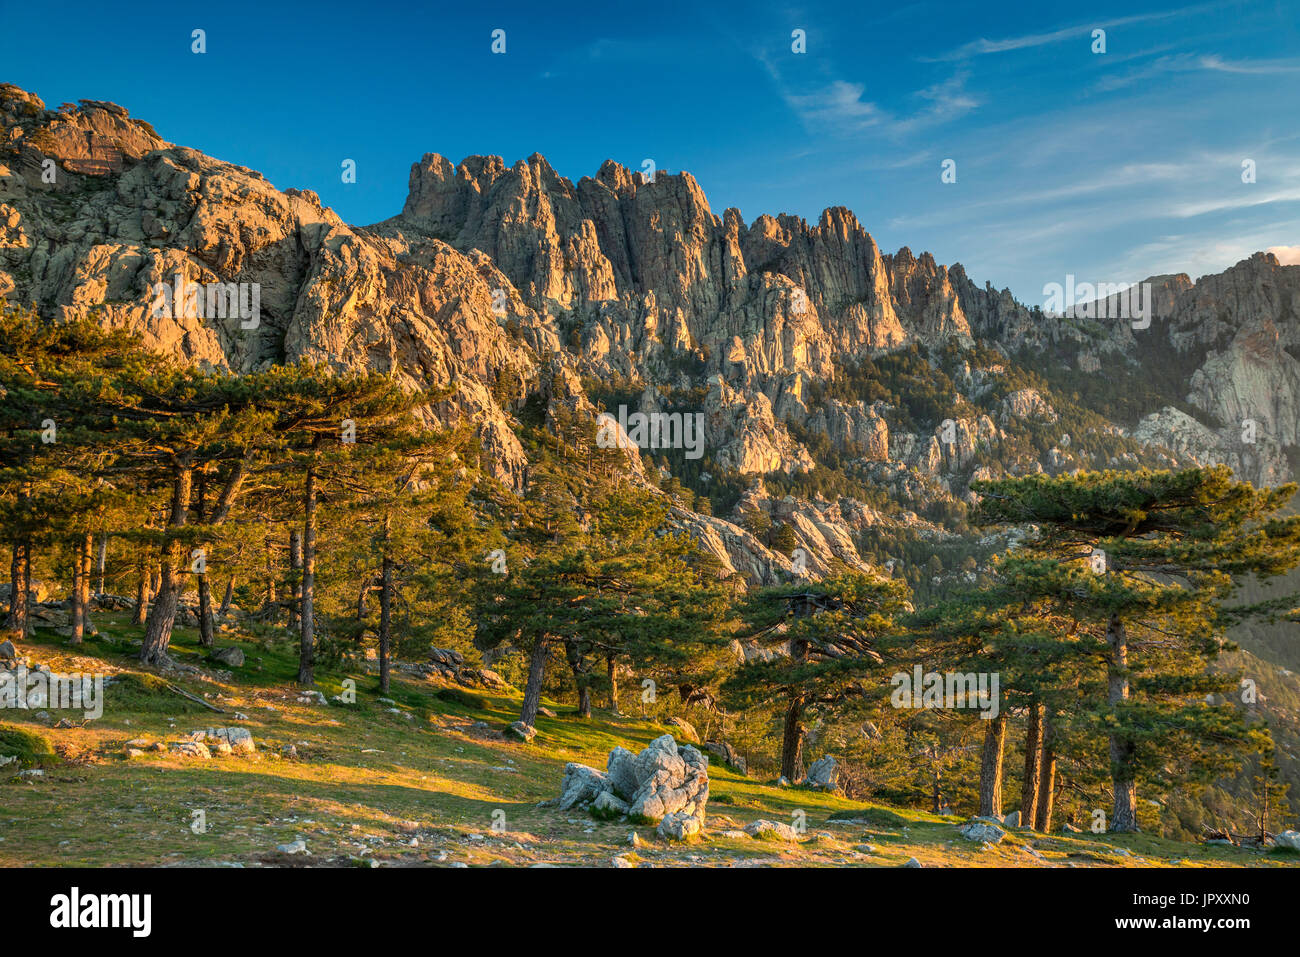 Aiguilles de Bavella, view at sunrise from Col de Bavella pass, Corse-du-Sud, Corsica, France Stock Photo